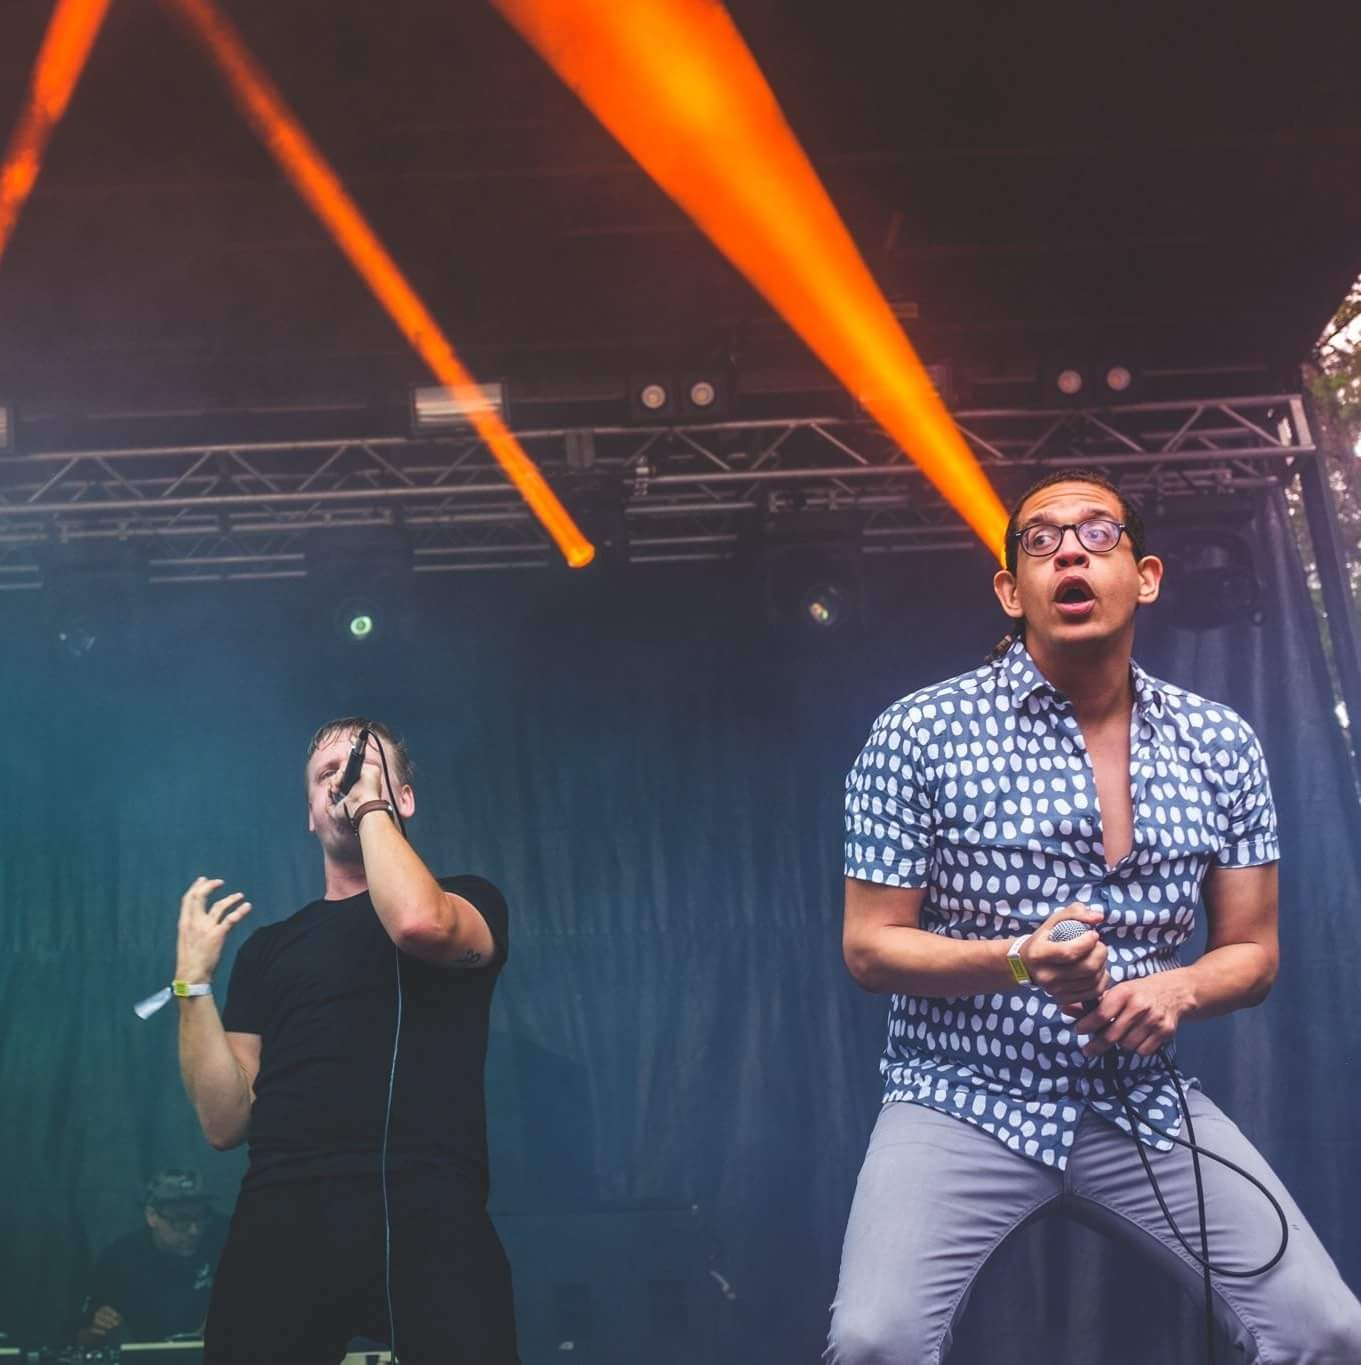 Ryan (right) performing on stage at Sound On Sound festival